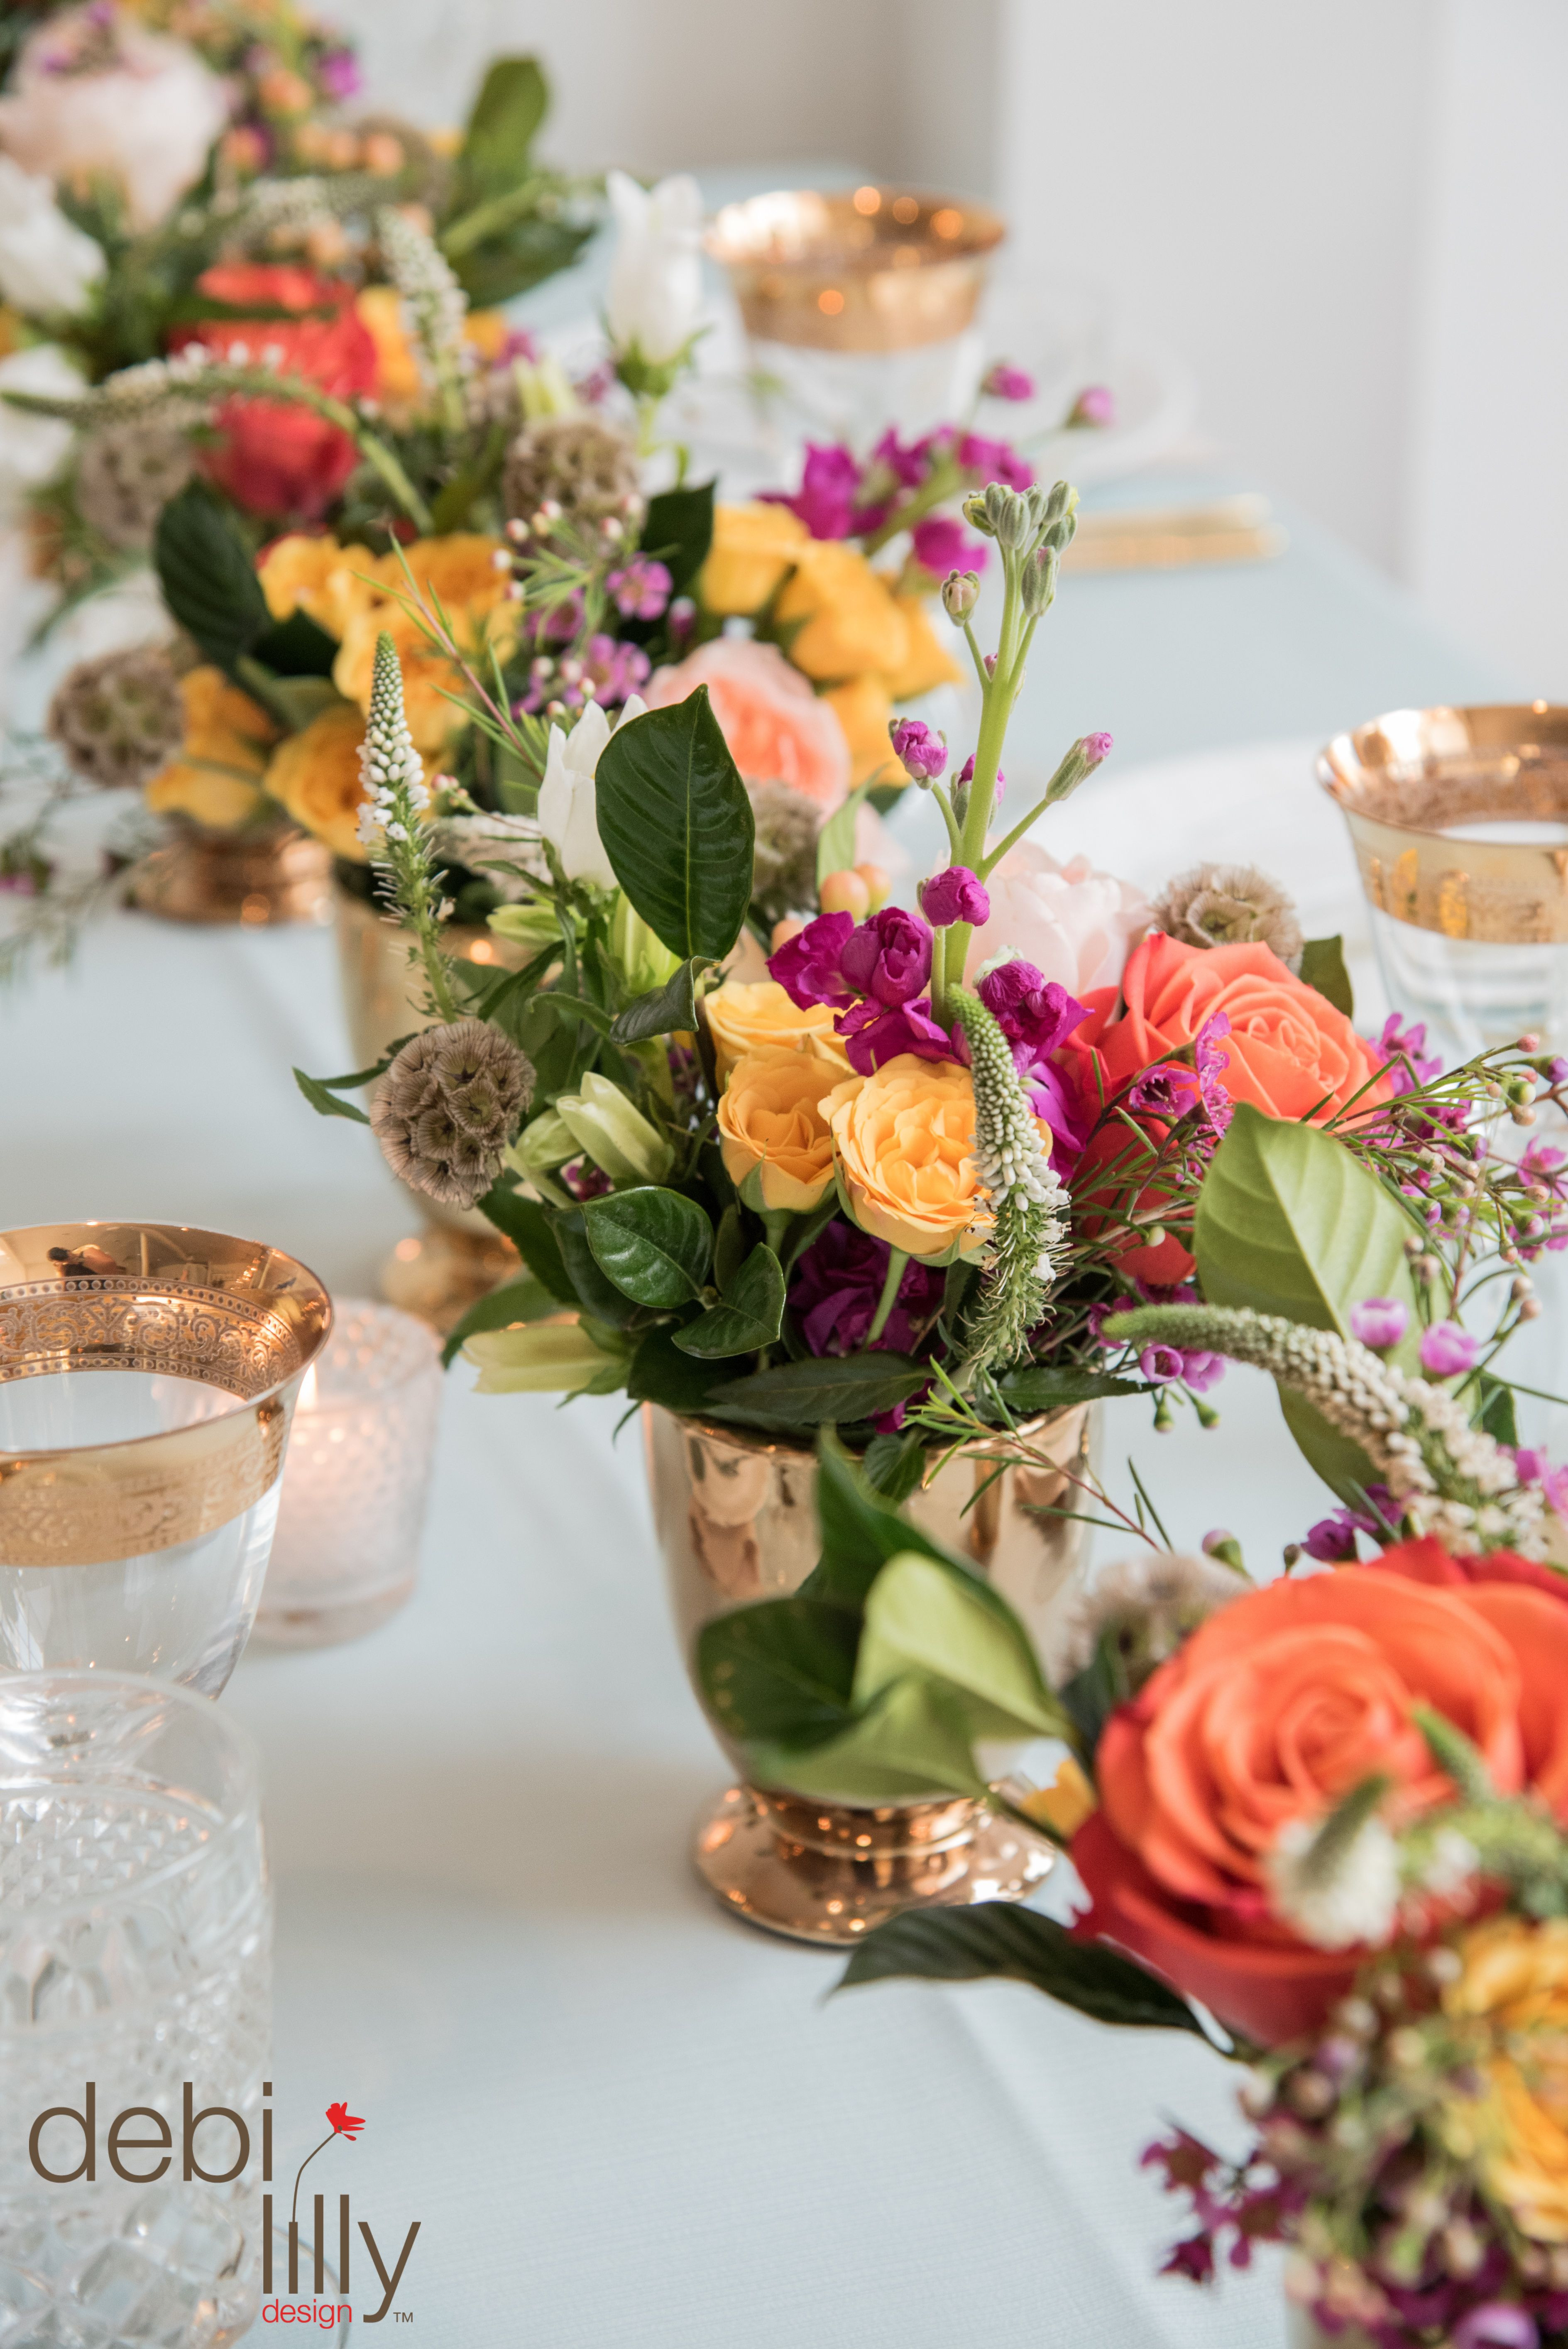 gold colored vases of dont be afraid of color this holiday season pair bright flower regarding dont be afraid of color this holiday season pair bright flower arrangements with